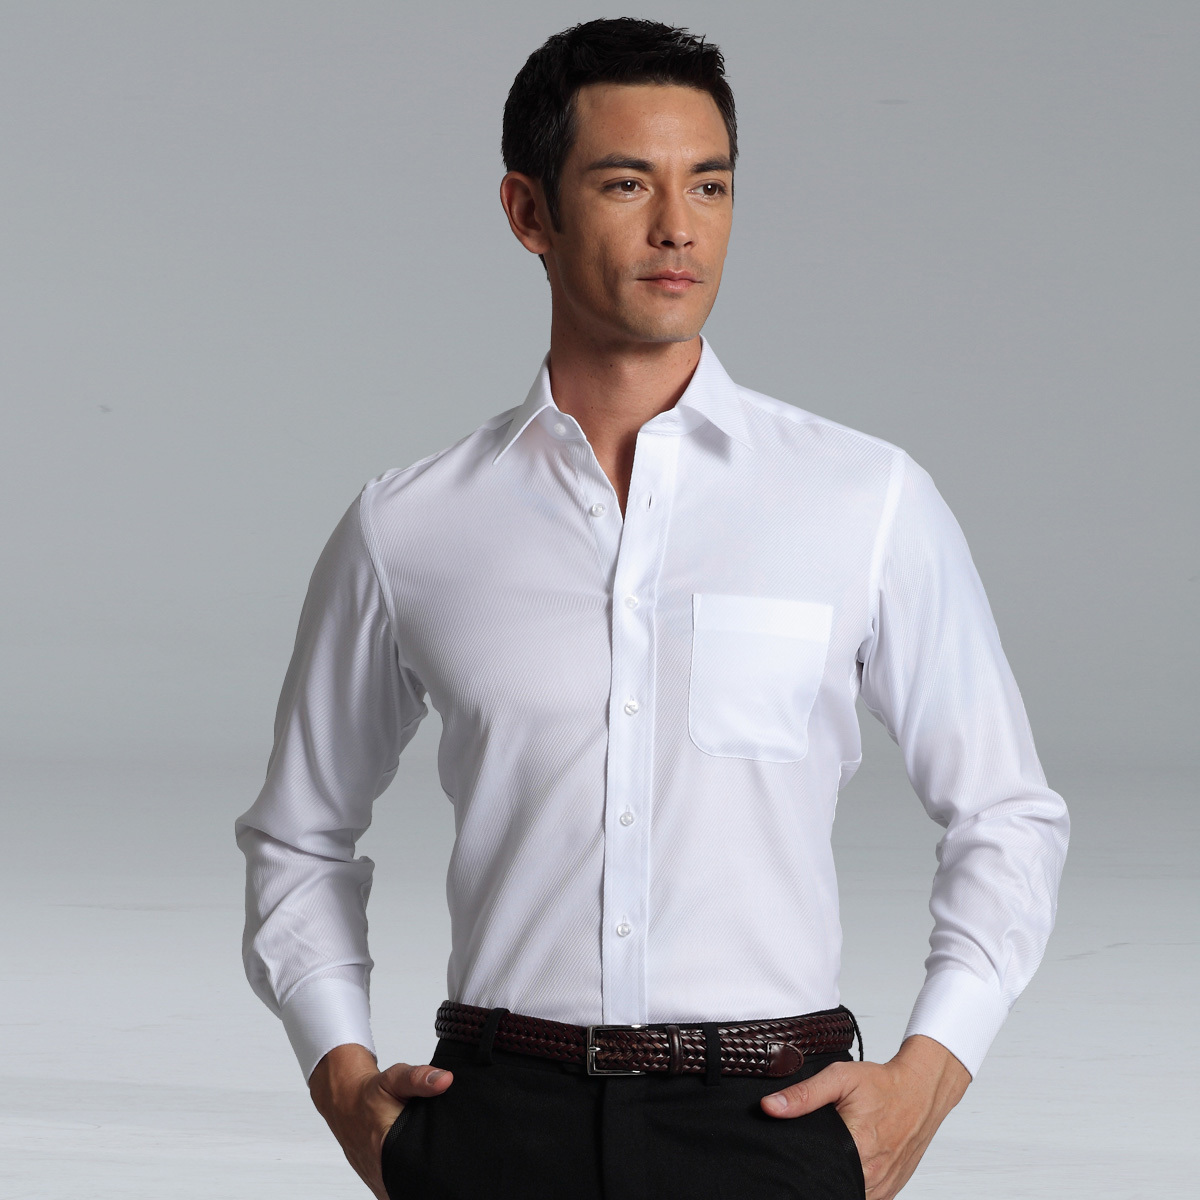 Find great deals on eBay for mens business shirts. Shop with confidence. Skip to main content. eBay: White; Brand. see all. Casual. Polo Ralph Lauren. Unbranded. Material. see all. % Cotton. Cotton Blend. Denim. Fashion Mens Casual Shirts Business Dress T-shirt Long Sleeve Slim Fit Tops GIFT. Brand New. $ Buy It Now.